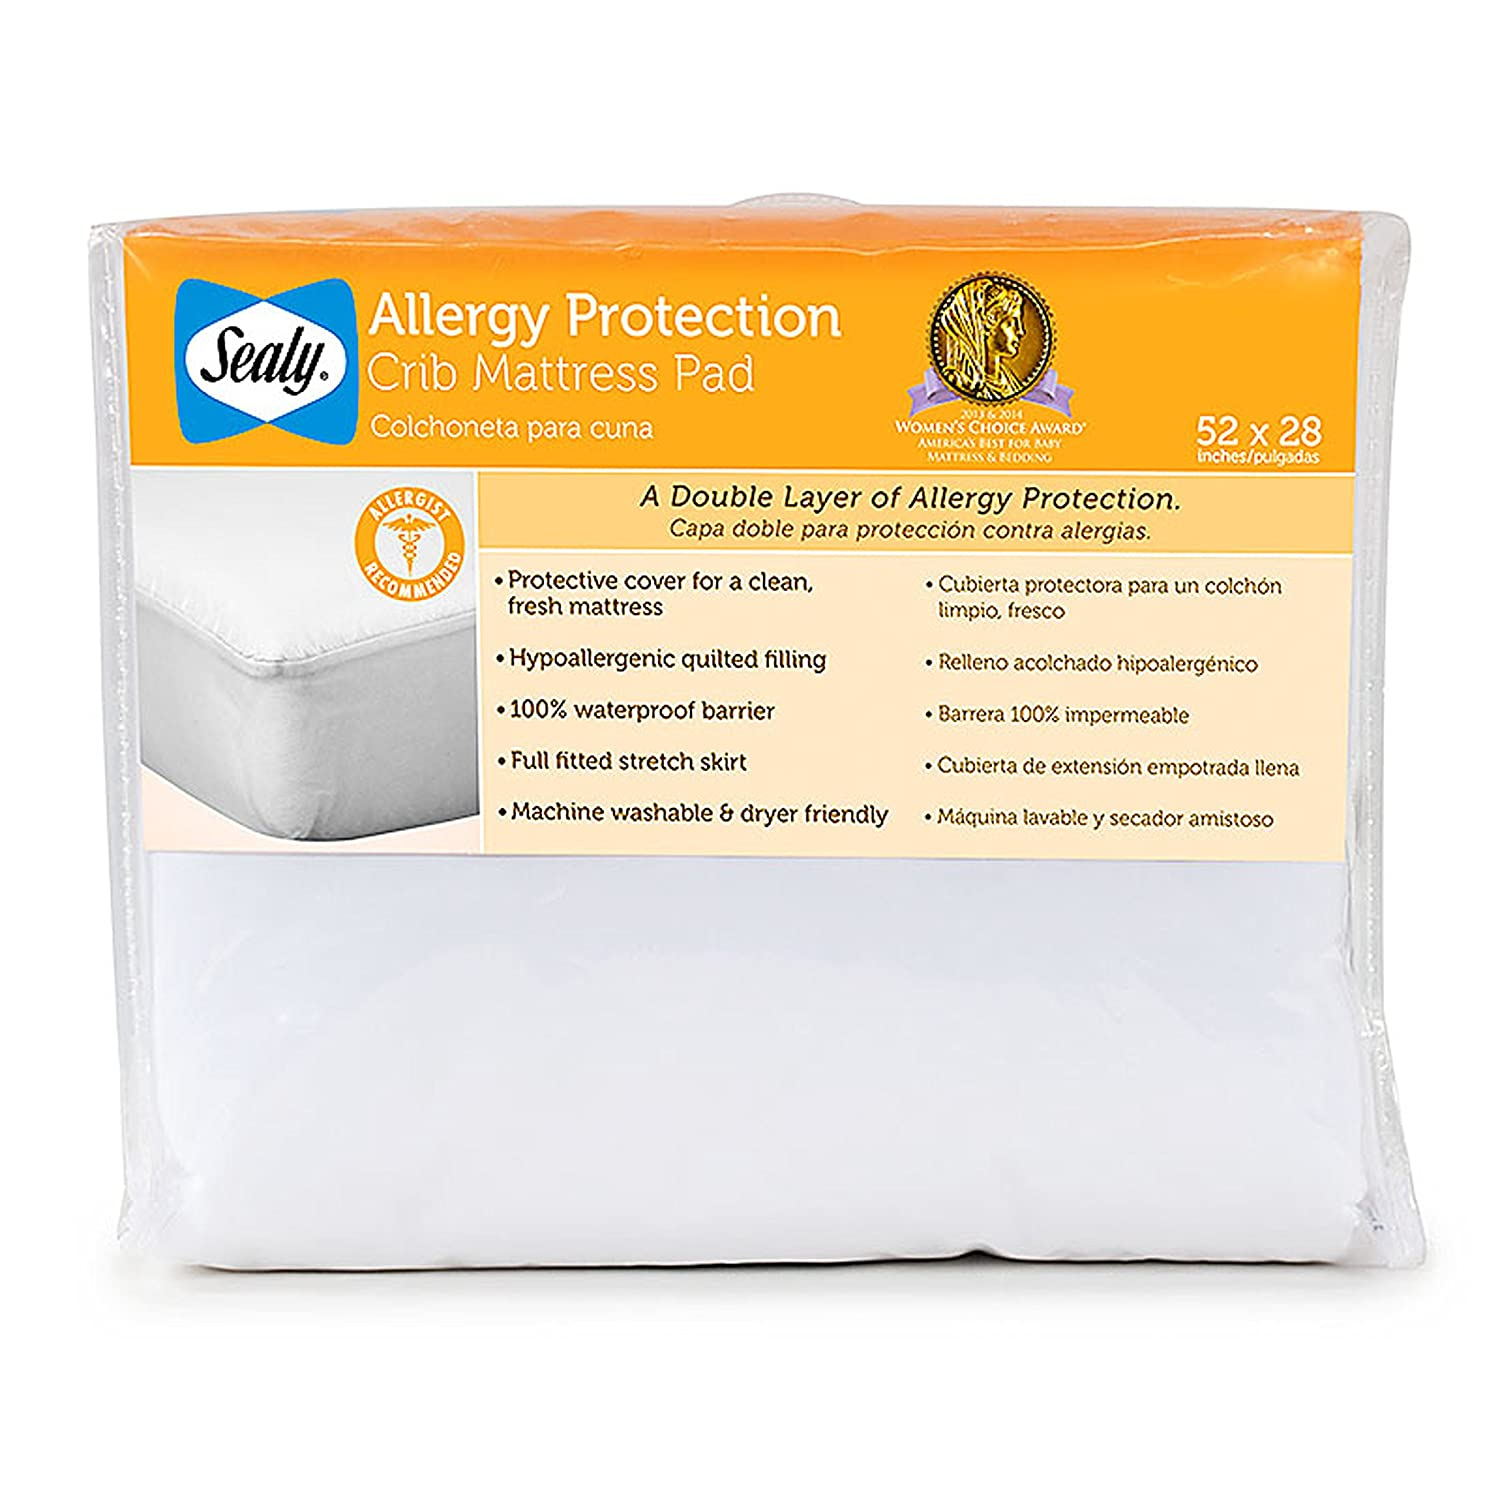 Amazon.com : Sealy Allergy Protection Crib Mattress Pad (Discontinued by Manufacturer) : Baby